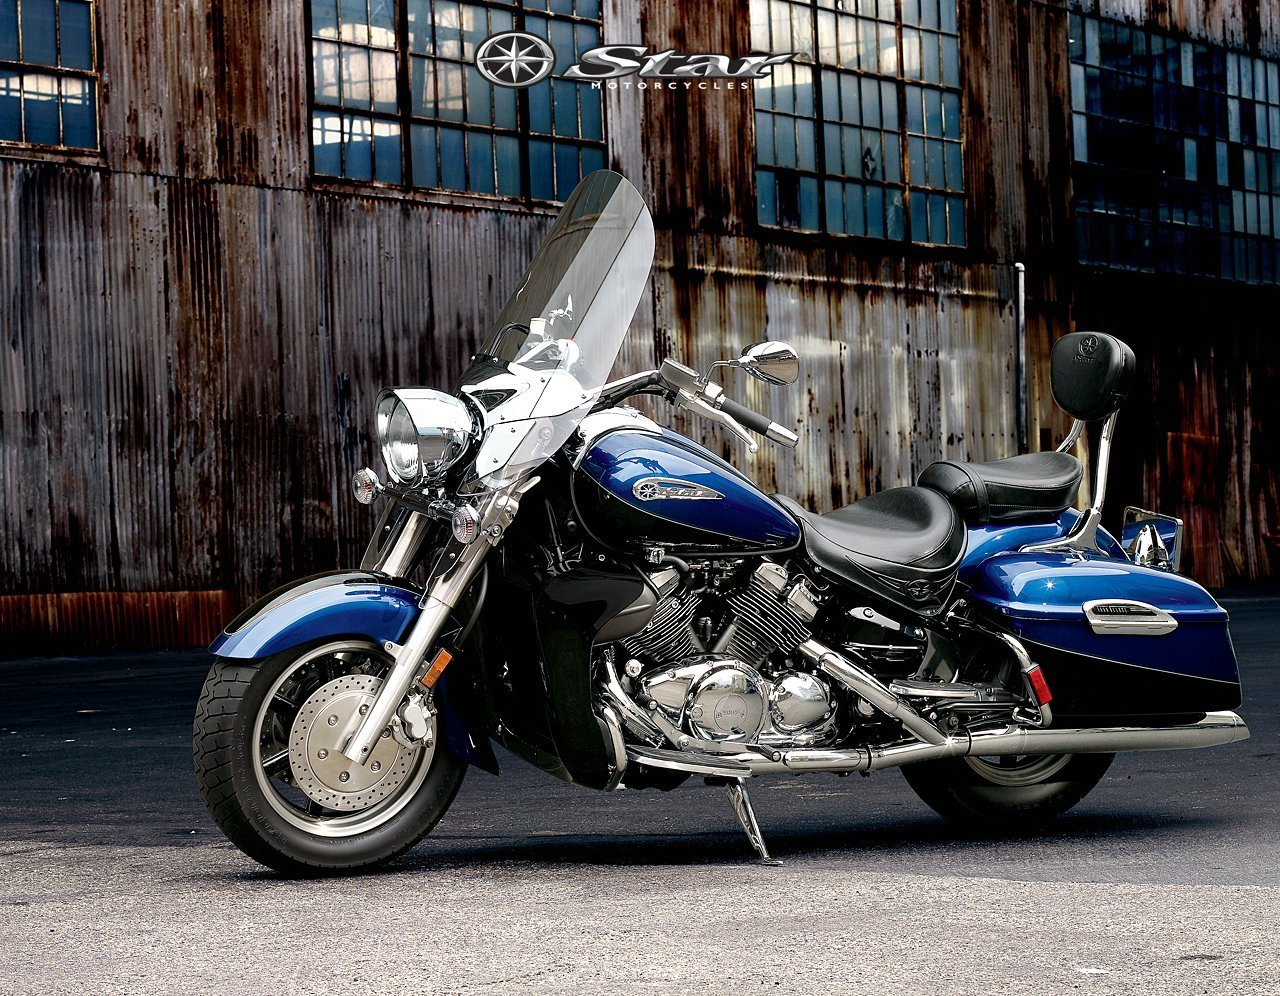 2008 yamaha royal star tour deluxe picture 212169 for Yamaha royal star motorcycle